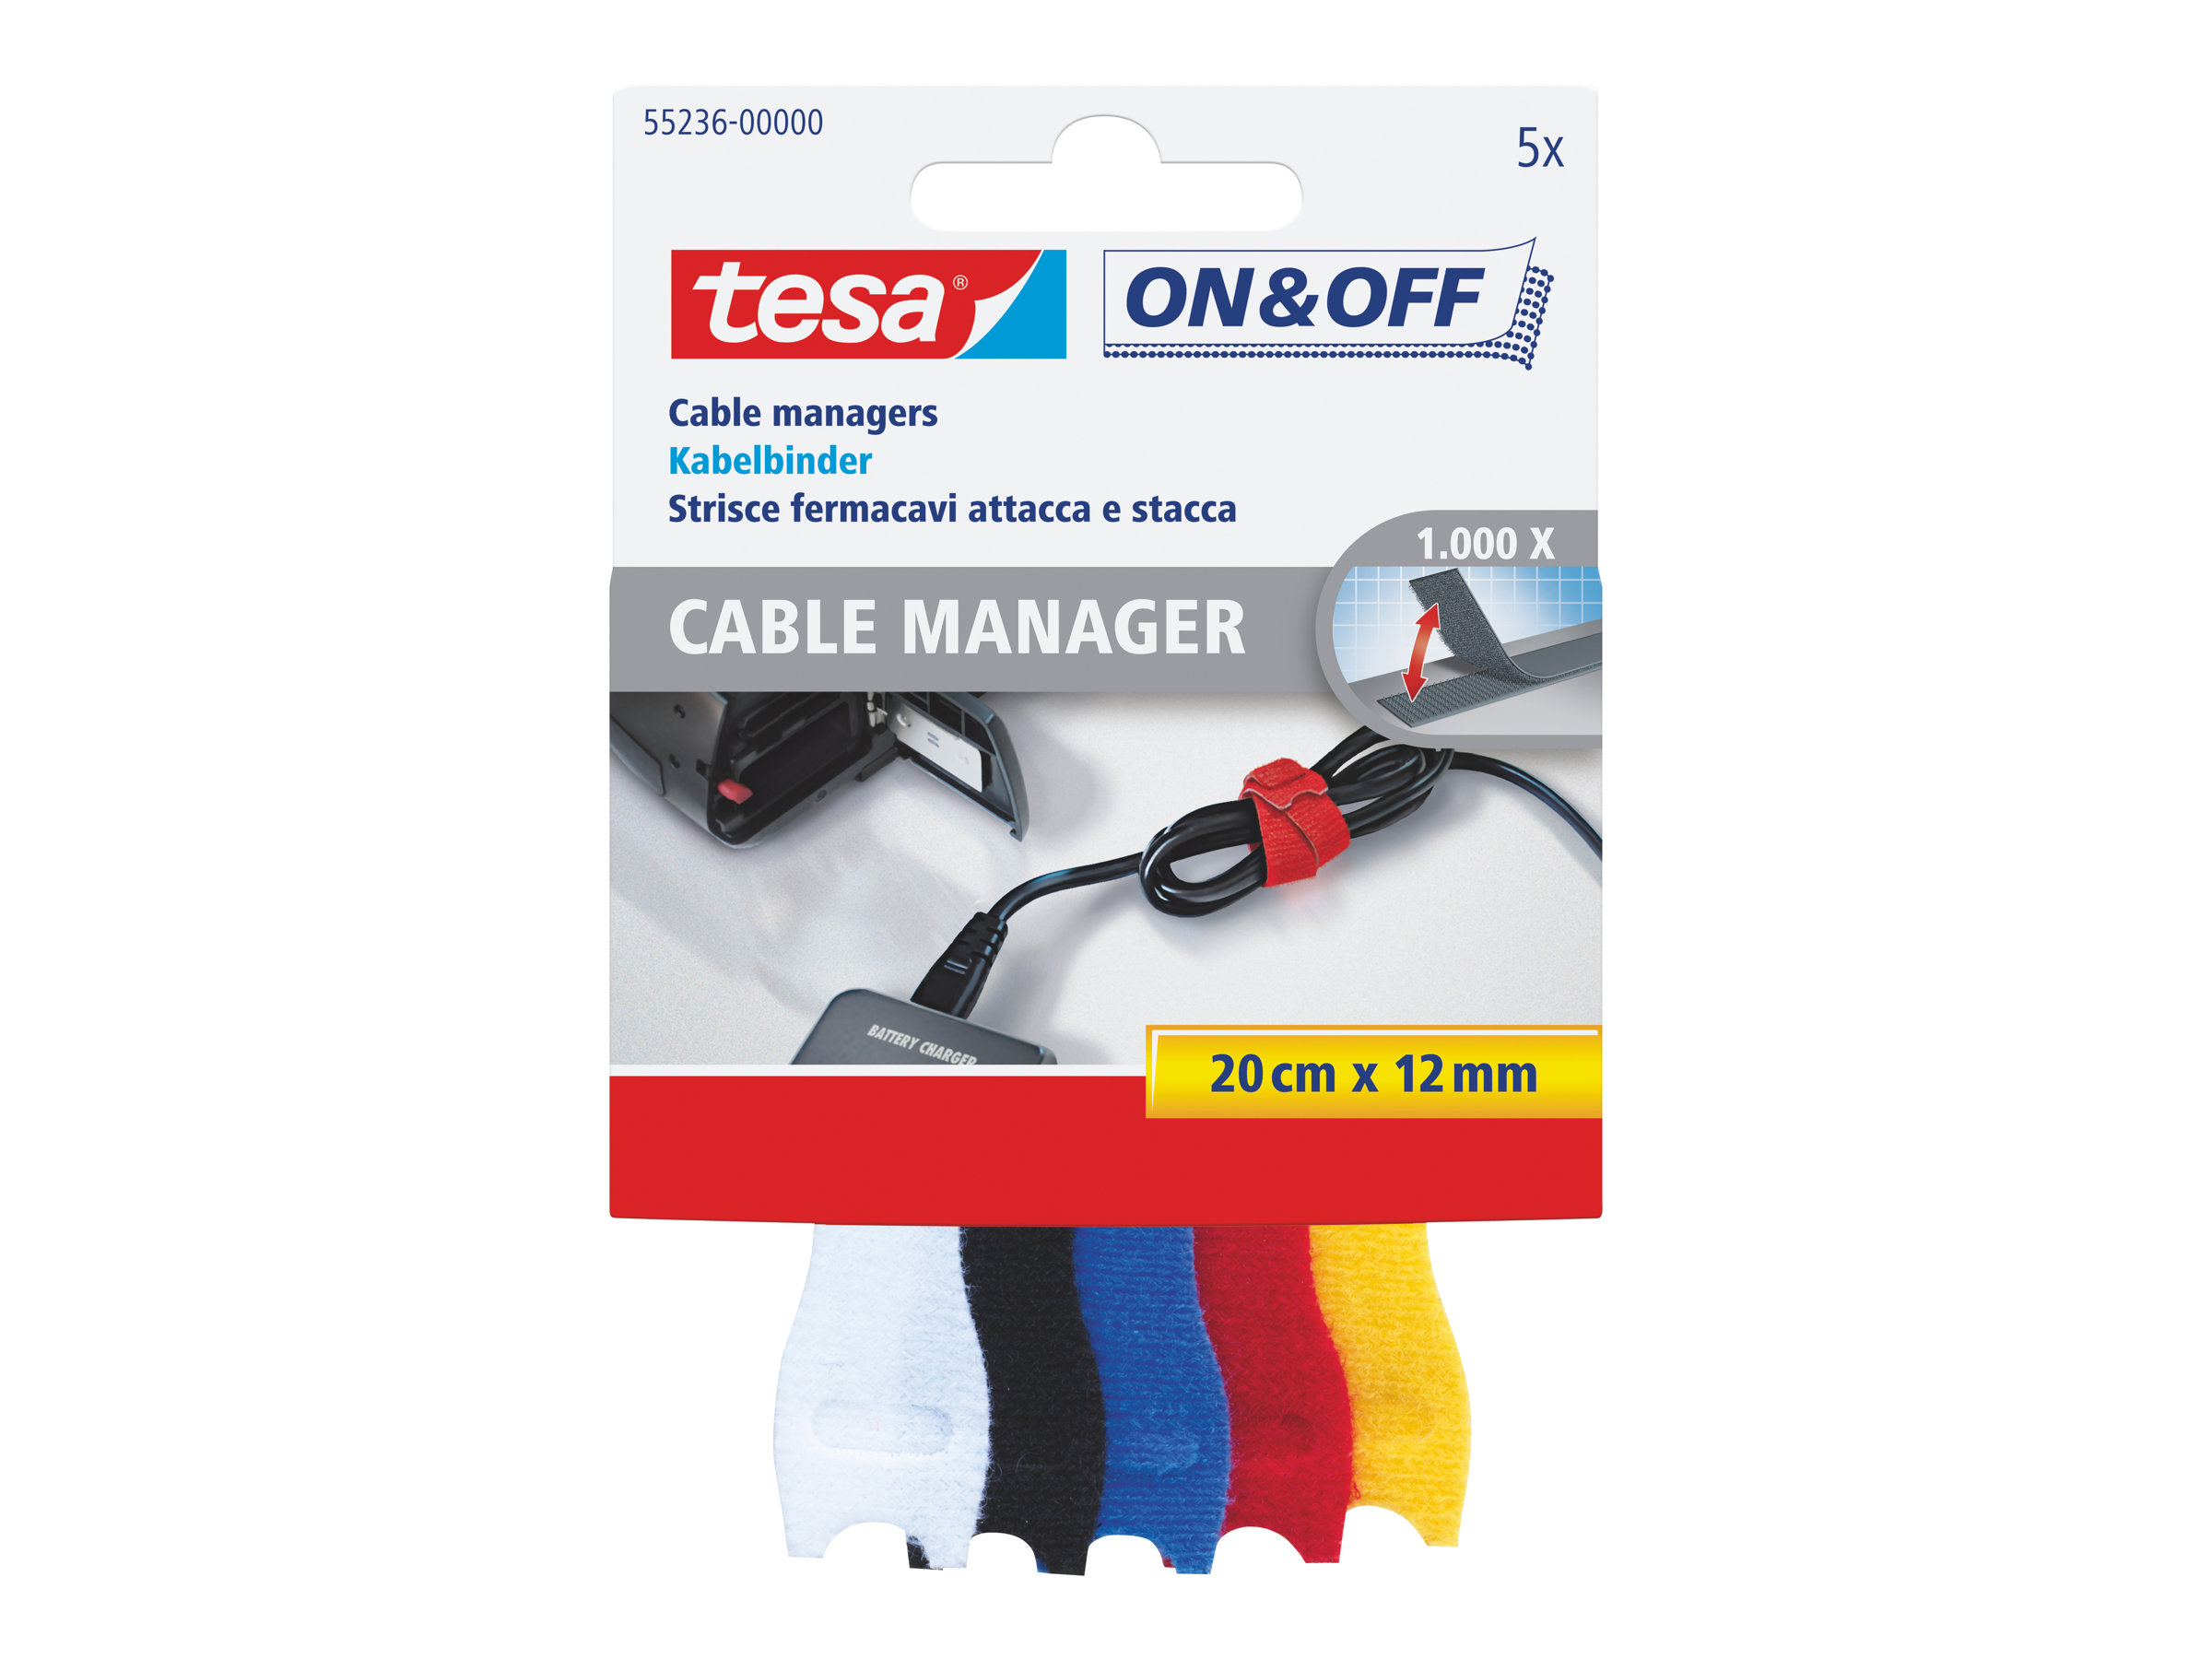 Tesa On & Off - 5 Attaches câble - noir, blanc, bleu, jaune, rouge - 20 cm